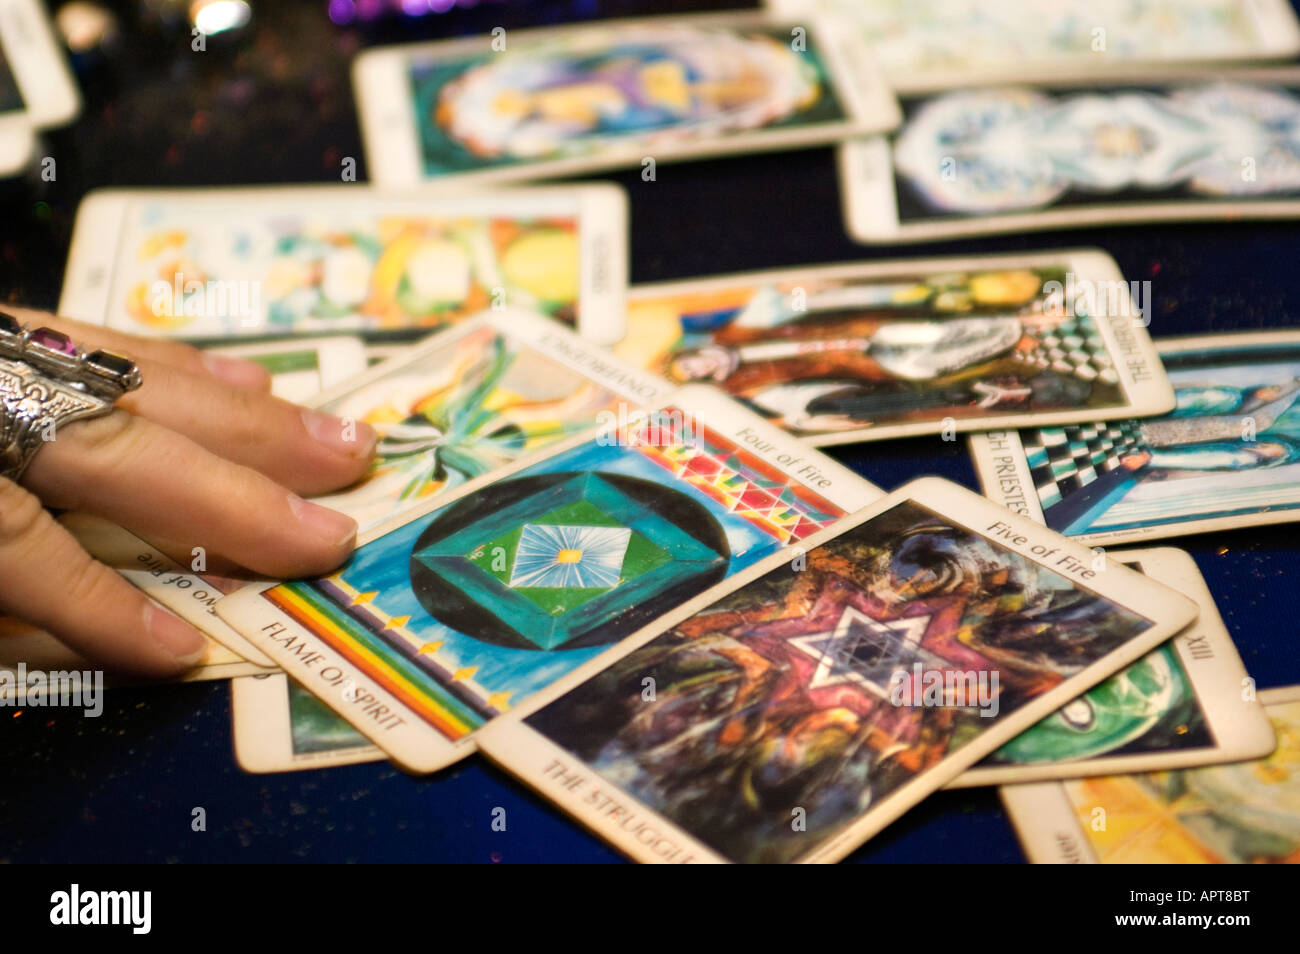 hand with tarot cards telling the future - Stock Image